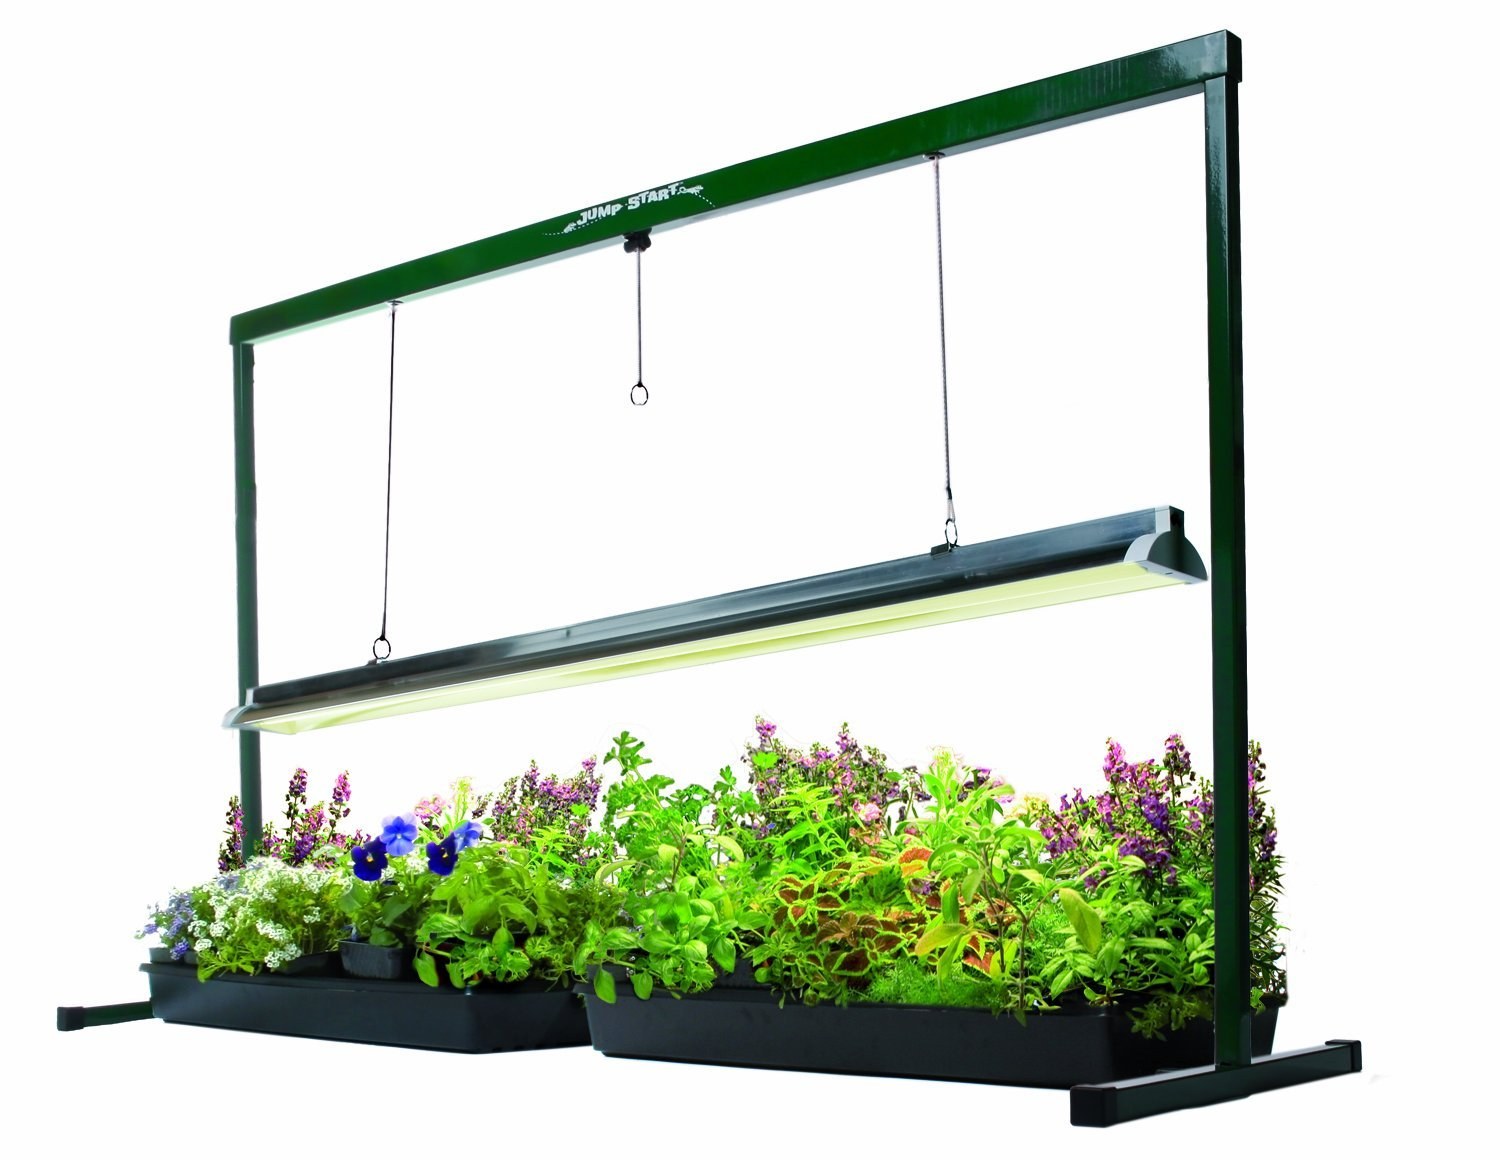 hydrofarm plant grow light system decoholic. Black Bedroom Furniture Sets. Home Design Ideas